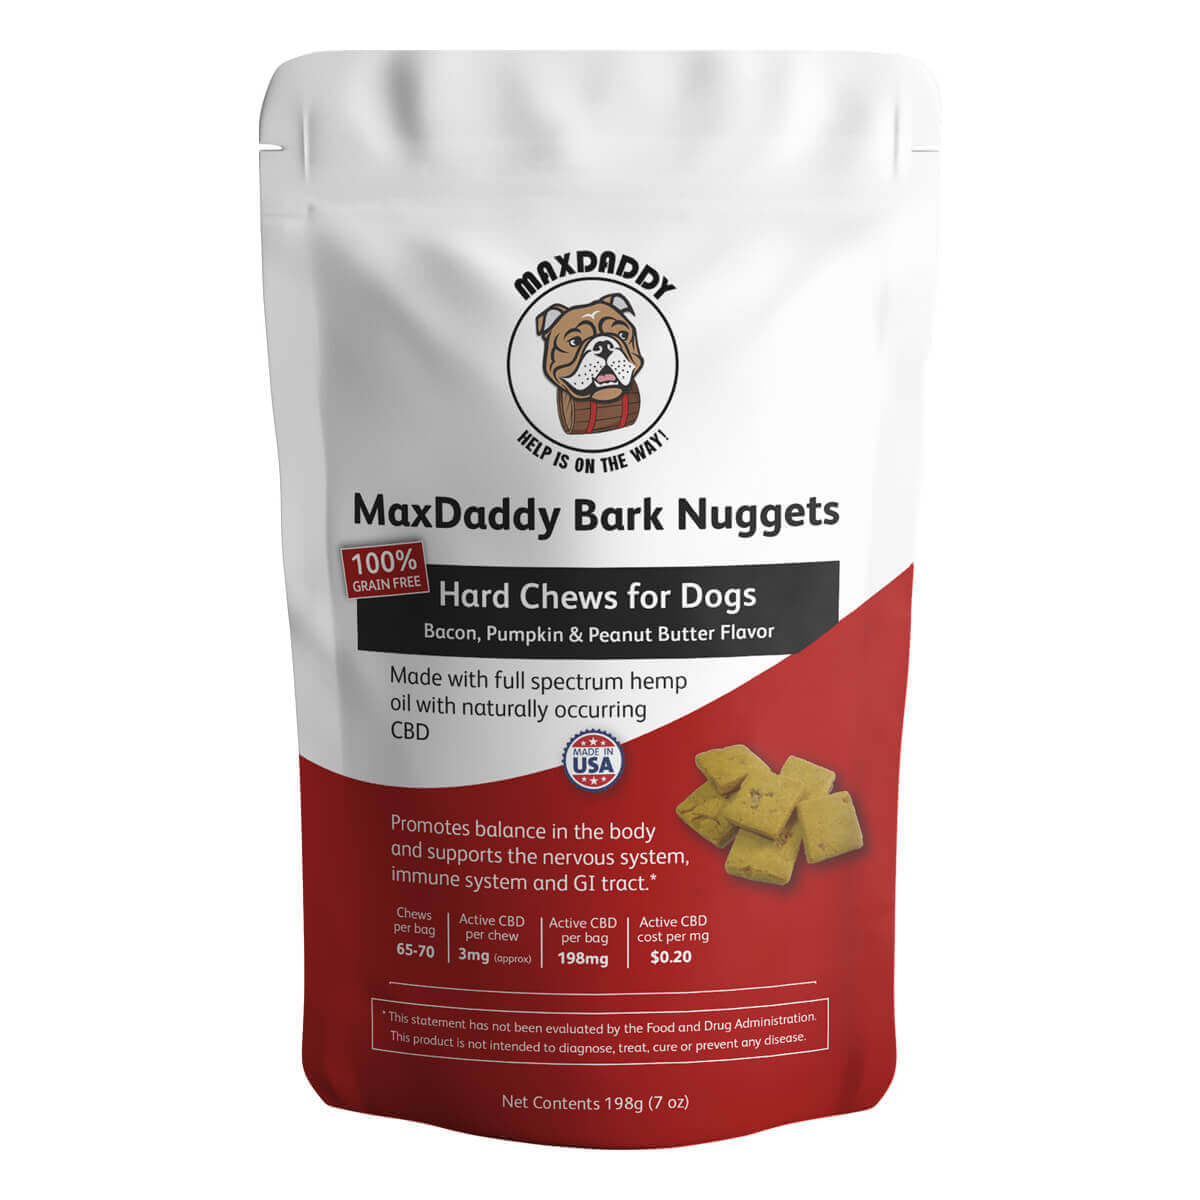 MaxDaddy Bark Nuggets CBD Dog Treats